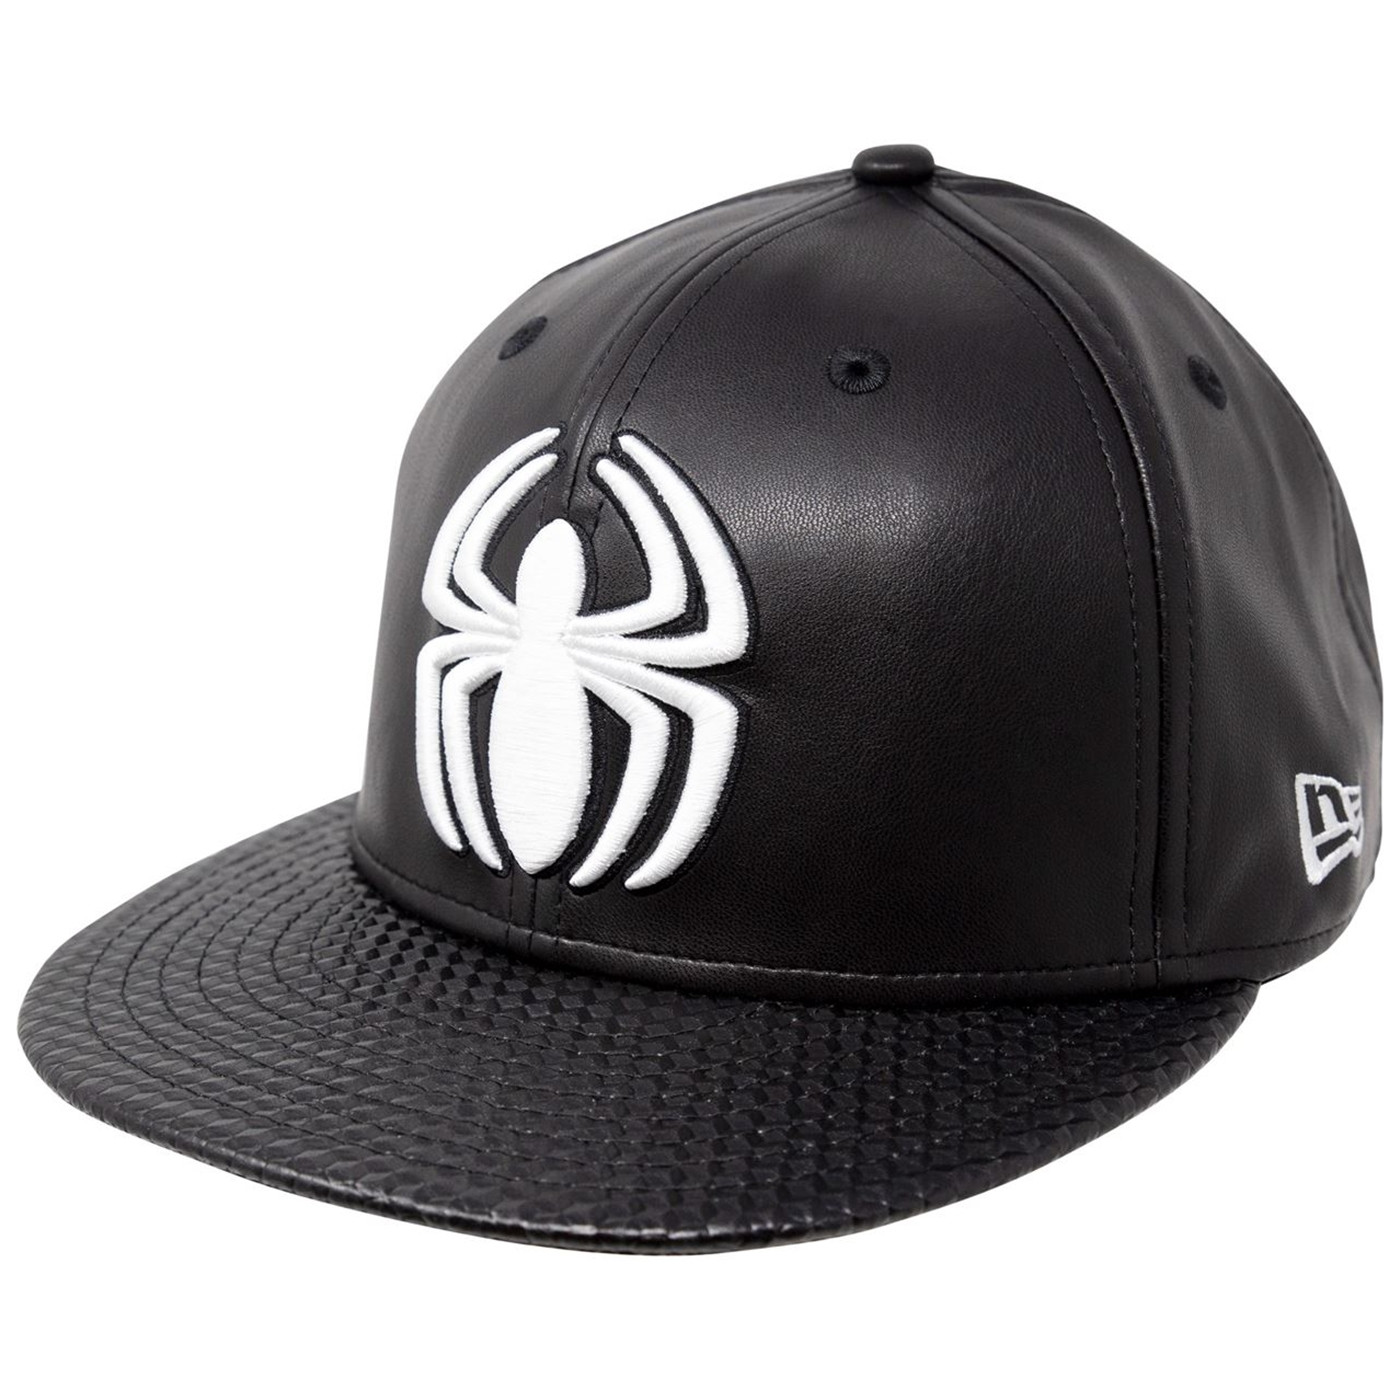 Spider-Man Stealth Suit Armor New Era 59Fifty Fitted Hat